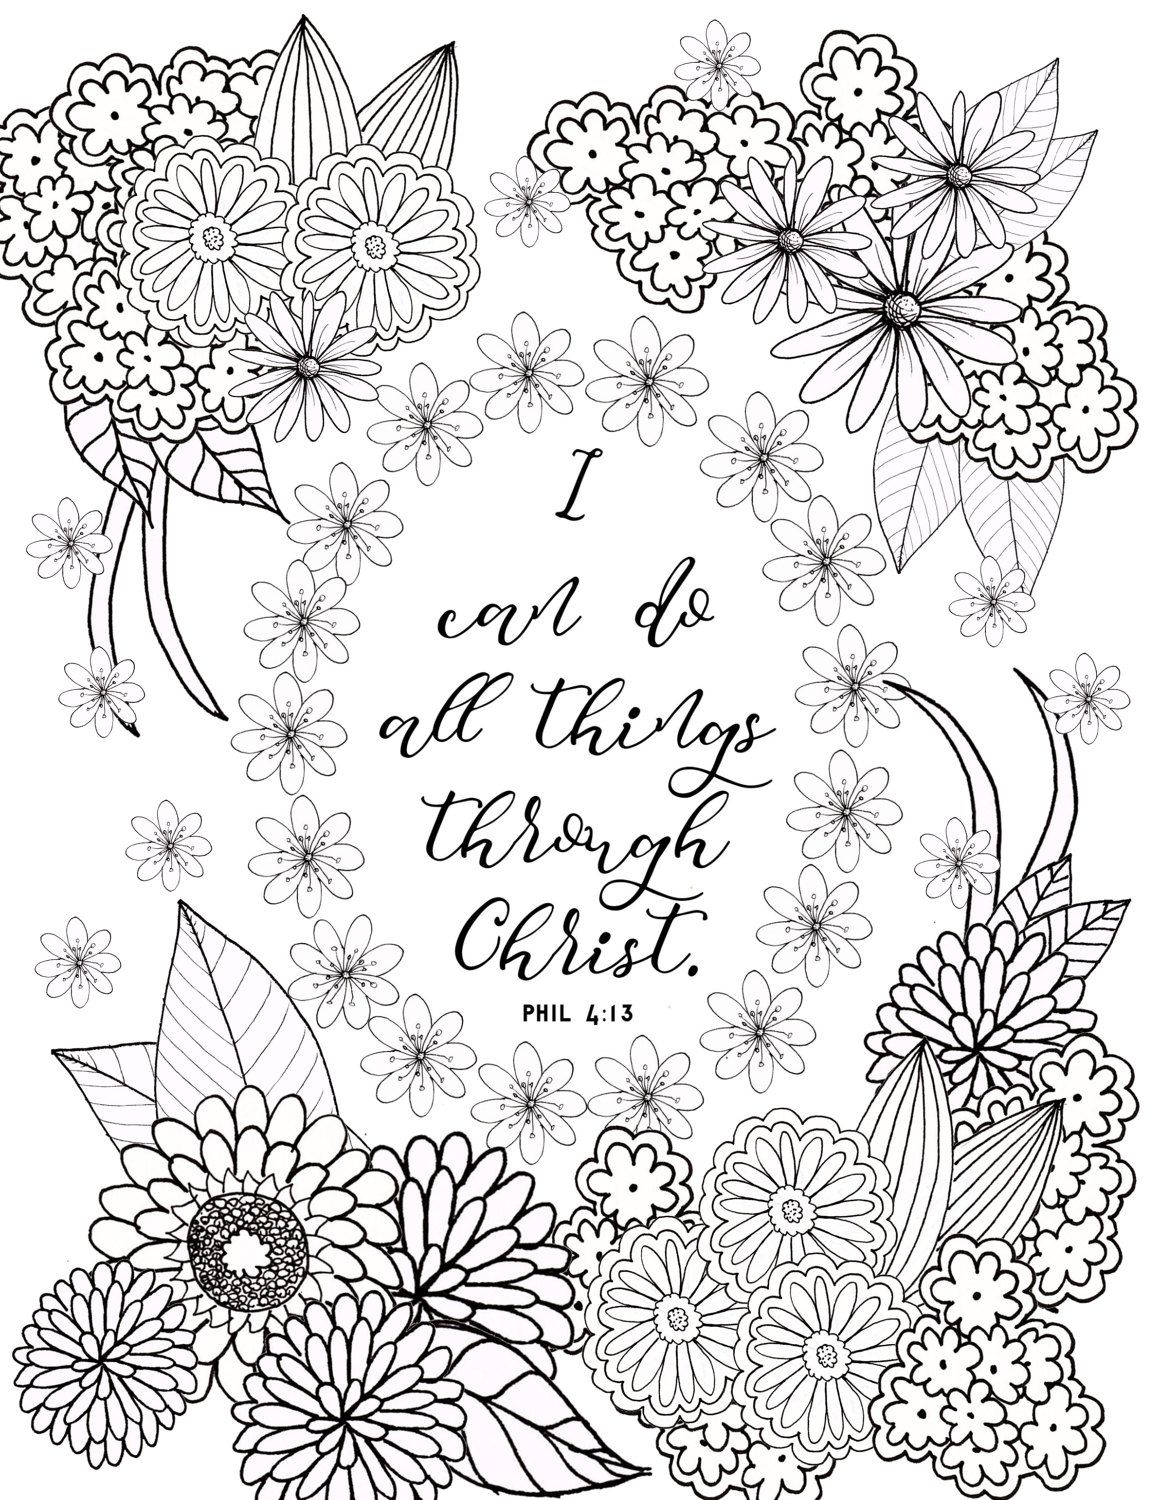 philippians 4 13 coloring page bible verse by fourthavepenandink